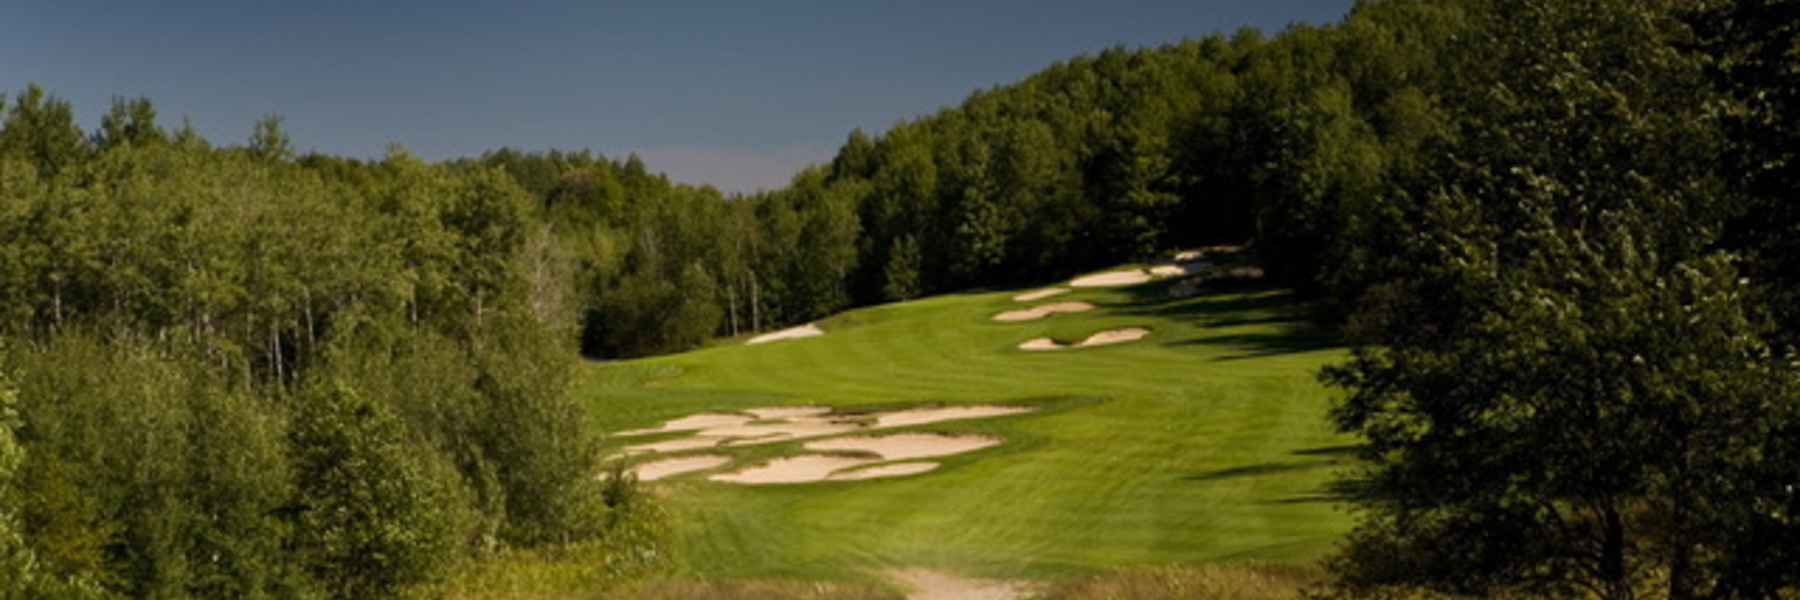 Golf Vacation Package - Masterpiece Golf Course at Treetops Resort